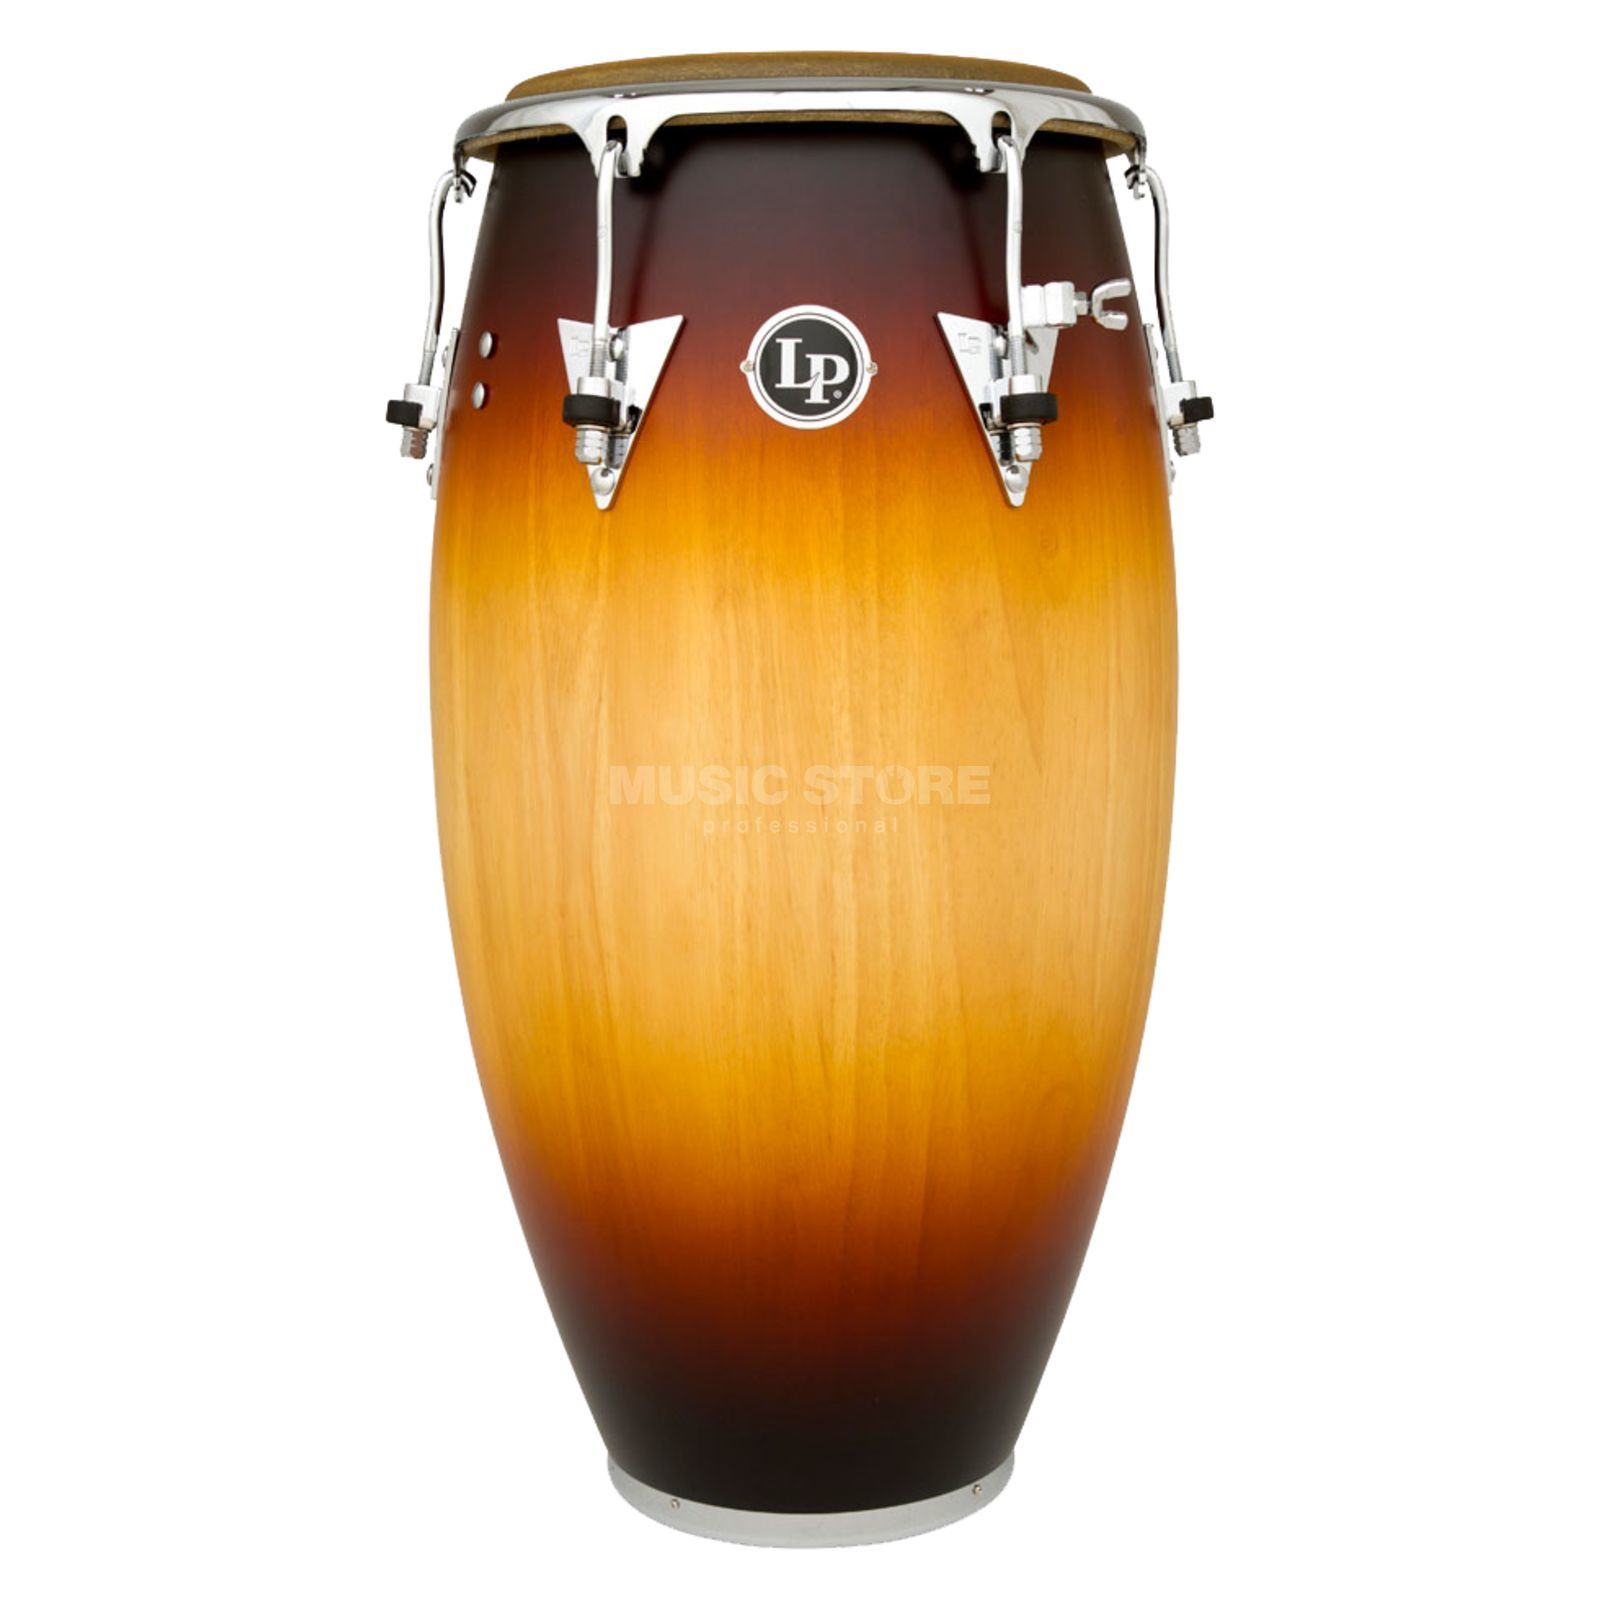 "Latin Percussion Classic Conga LP522X-MSB, 11"" Quinto, Antique Sunburst Produktbild"